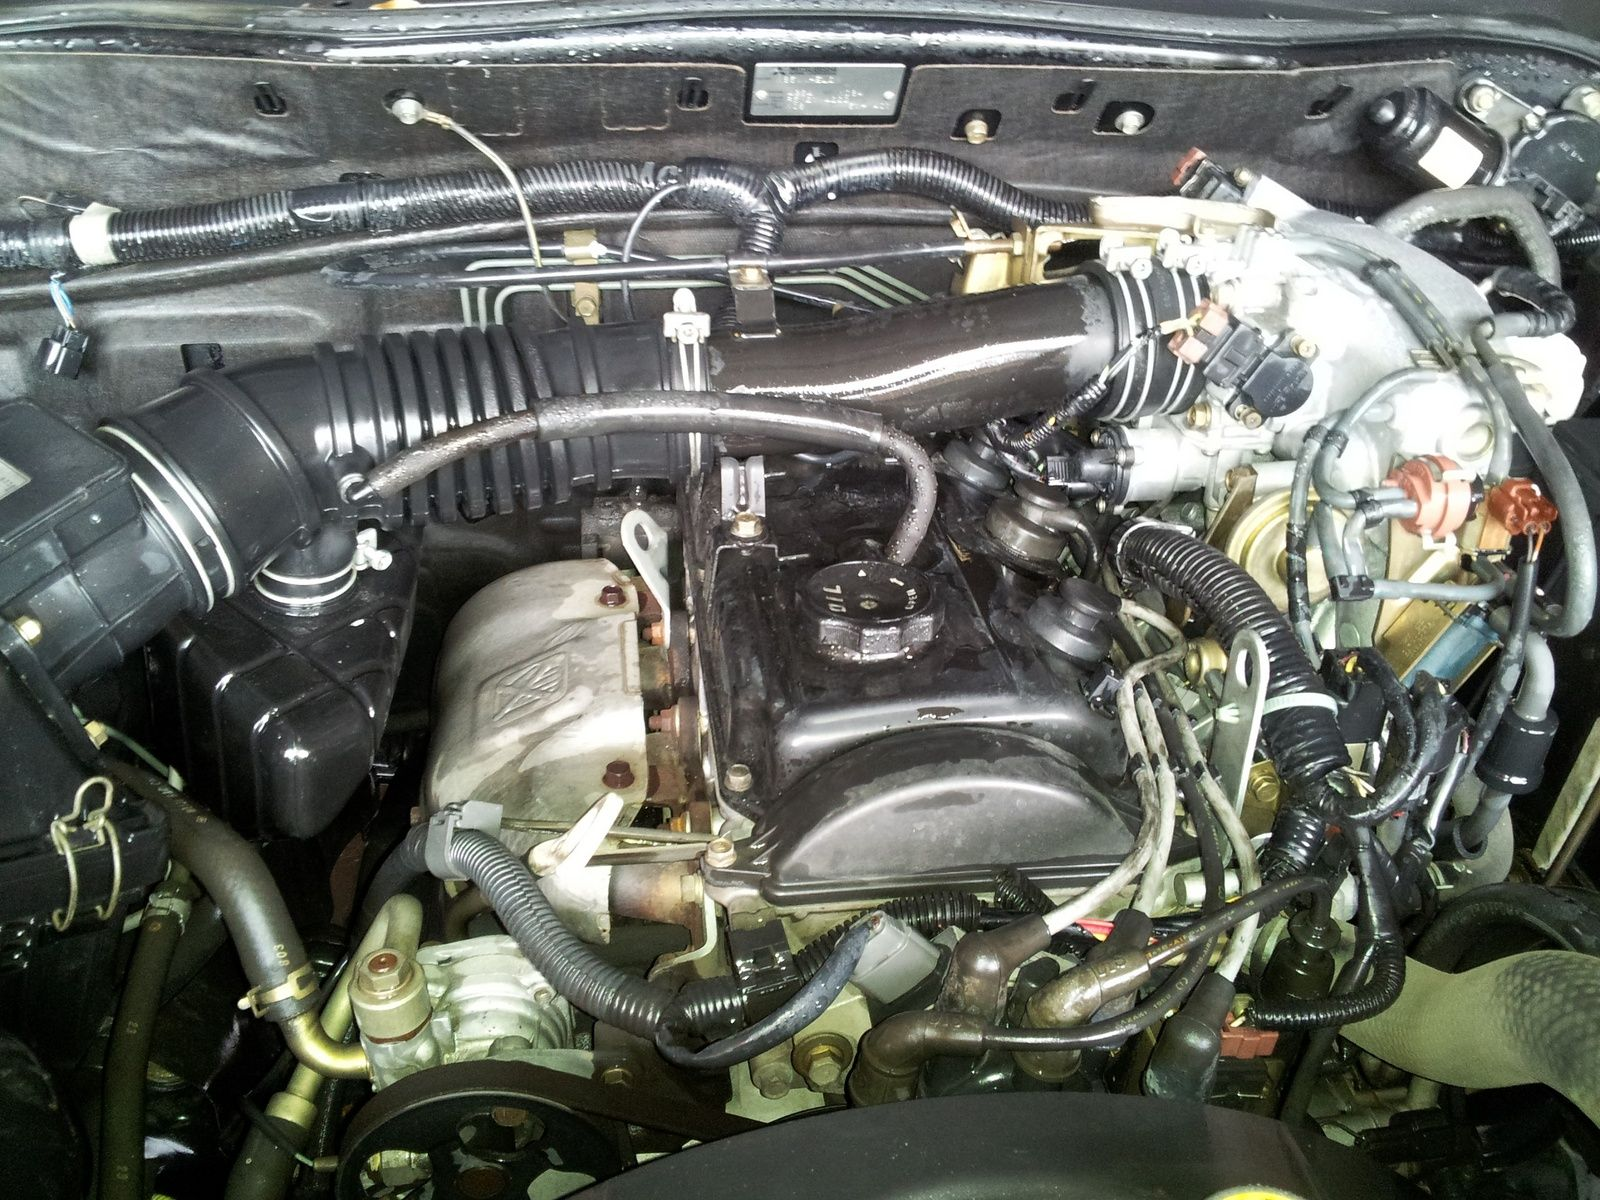 2004 mitsubishi montero sport used engine description gas engine 3 5l vin r 8th digit riv c180 180x4 fits 2004 mitsubishi montero sport 3 5l vin r